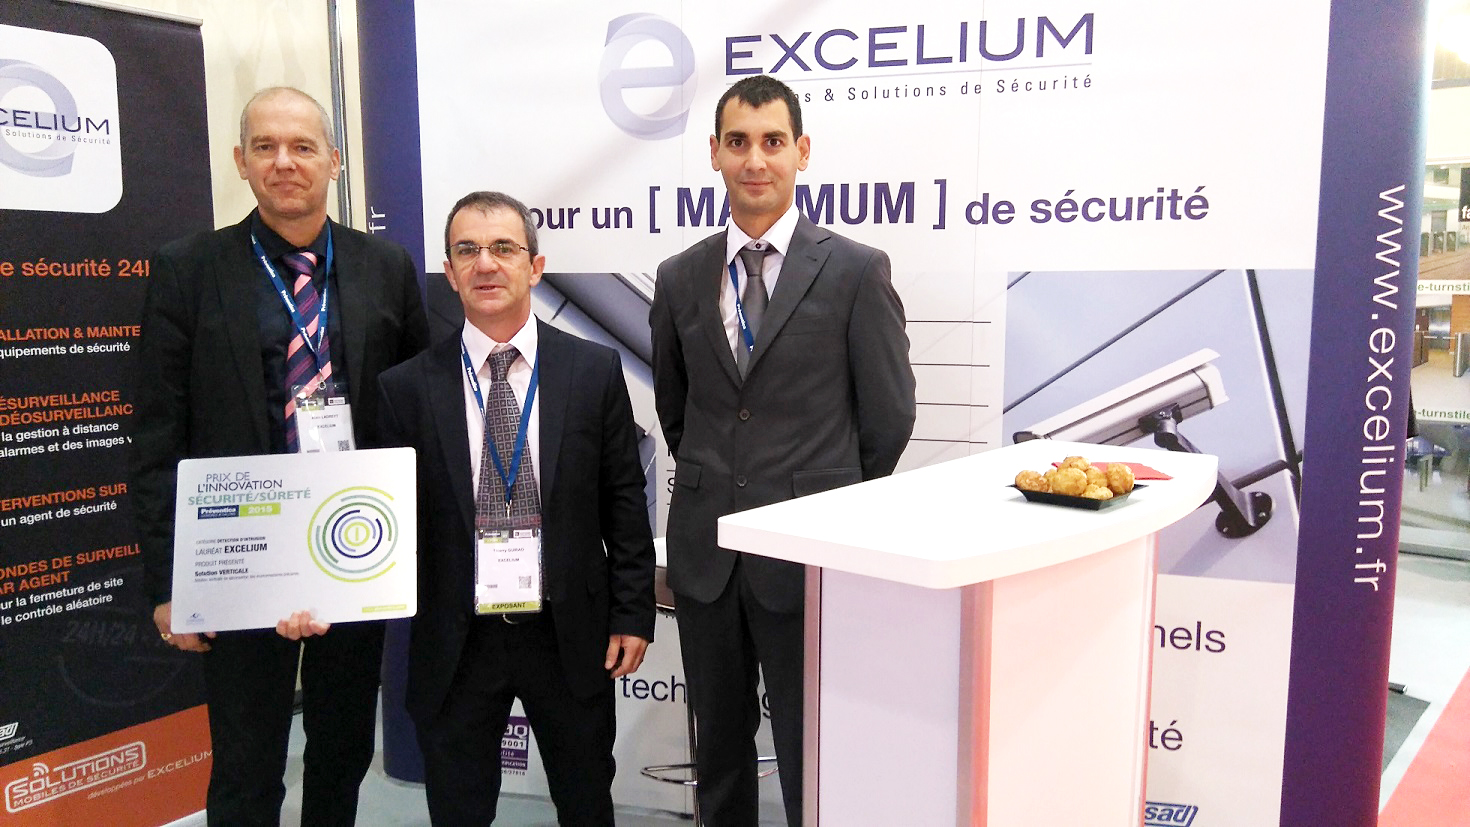 Preventica2015PrixINNOVATION